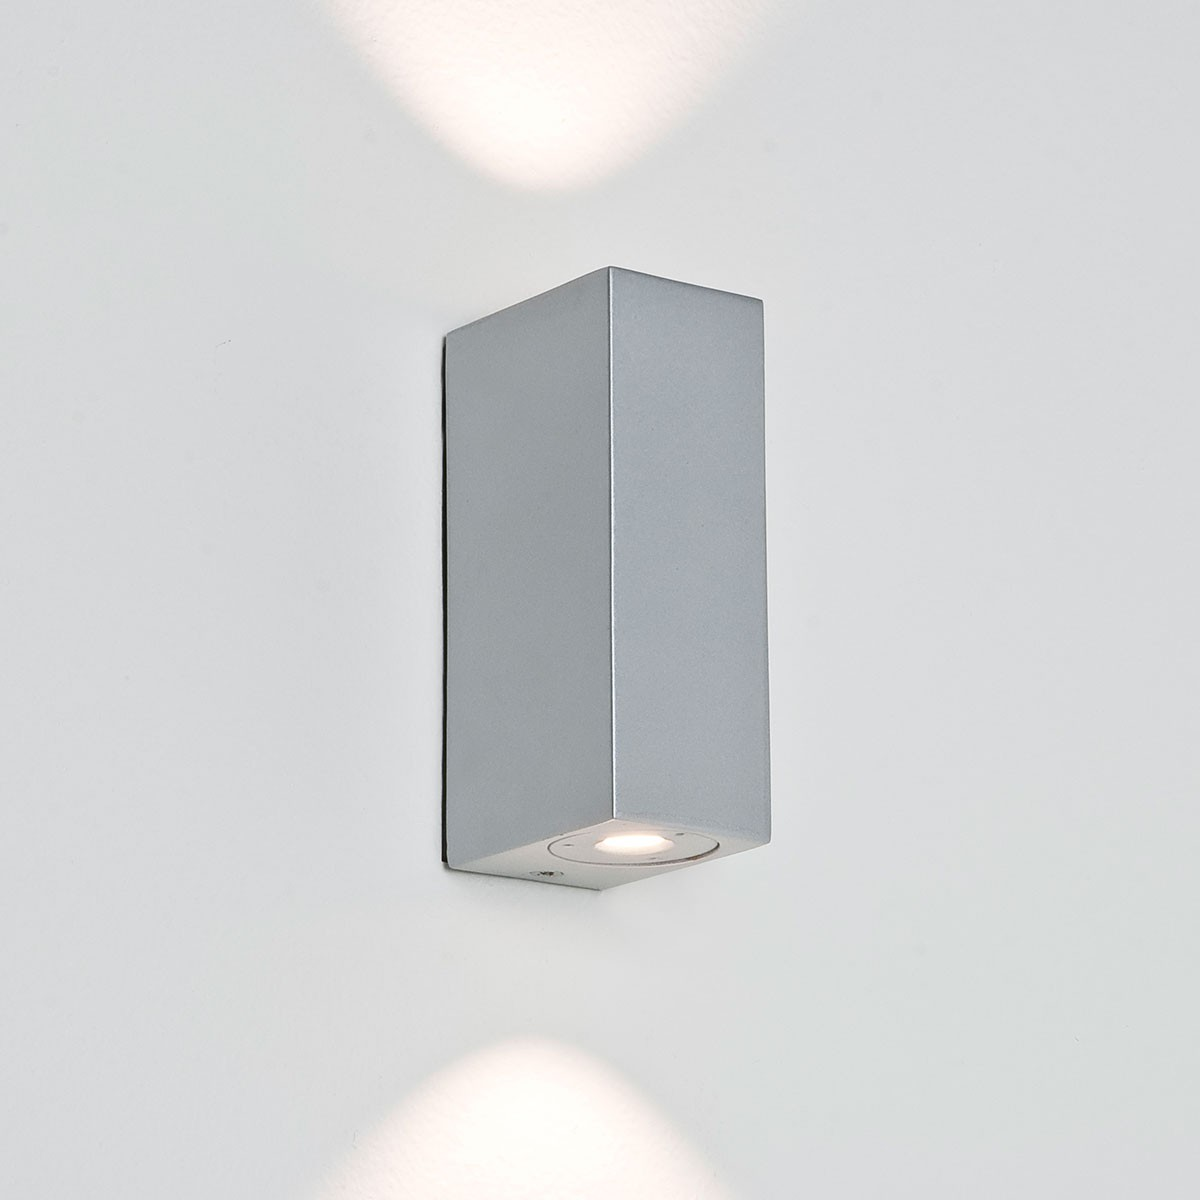 Silver Crystal Wall Lights : Astro Bloc LED Painted Silver Bathroom Wall Light at UK Electrical Supplies.